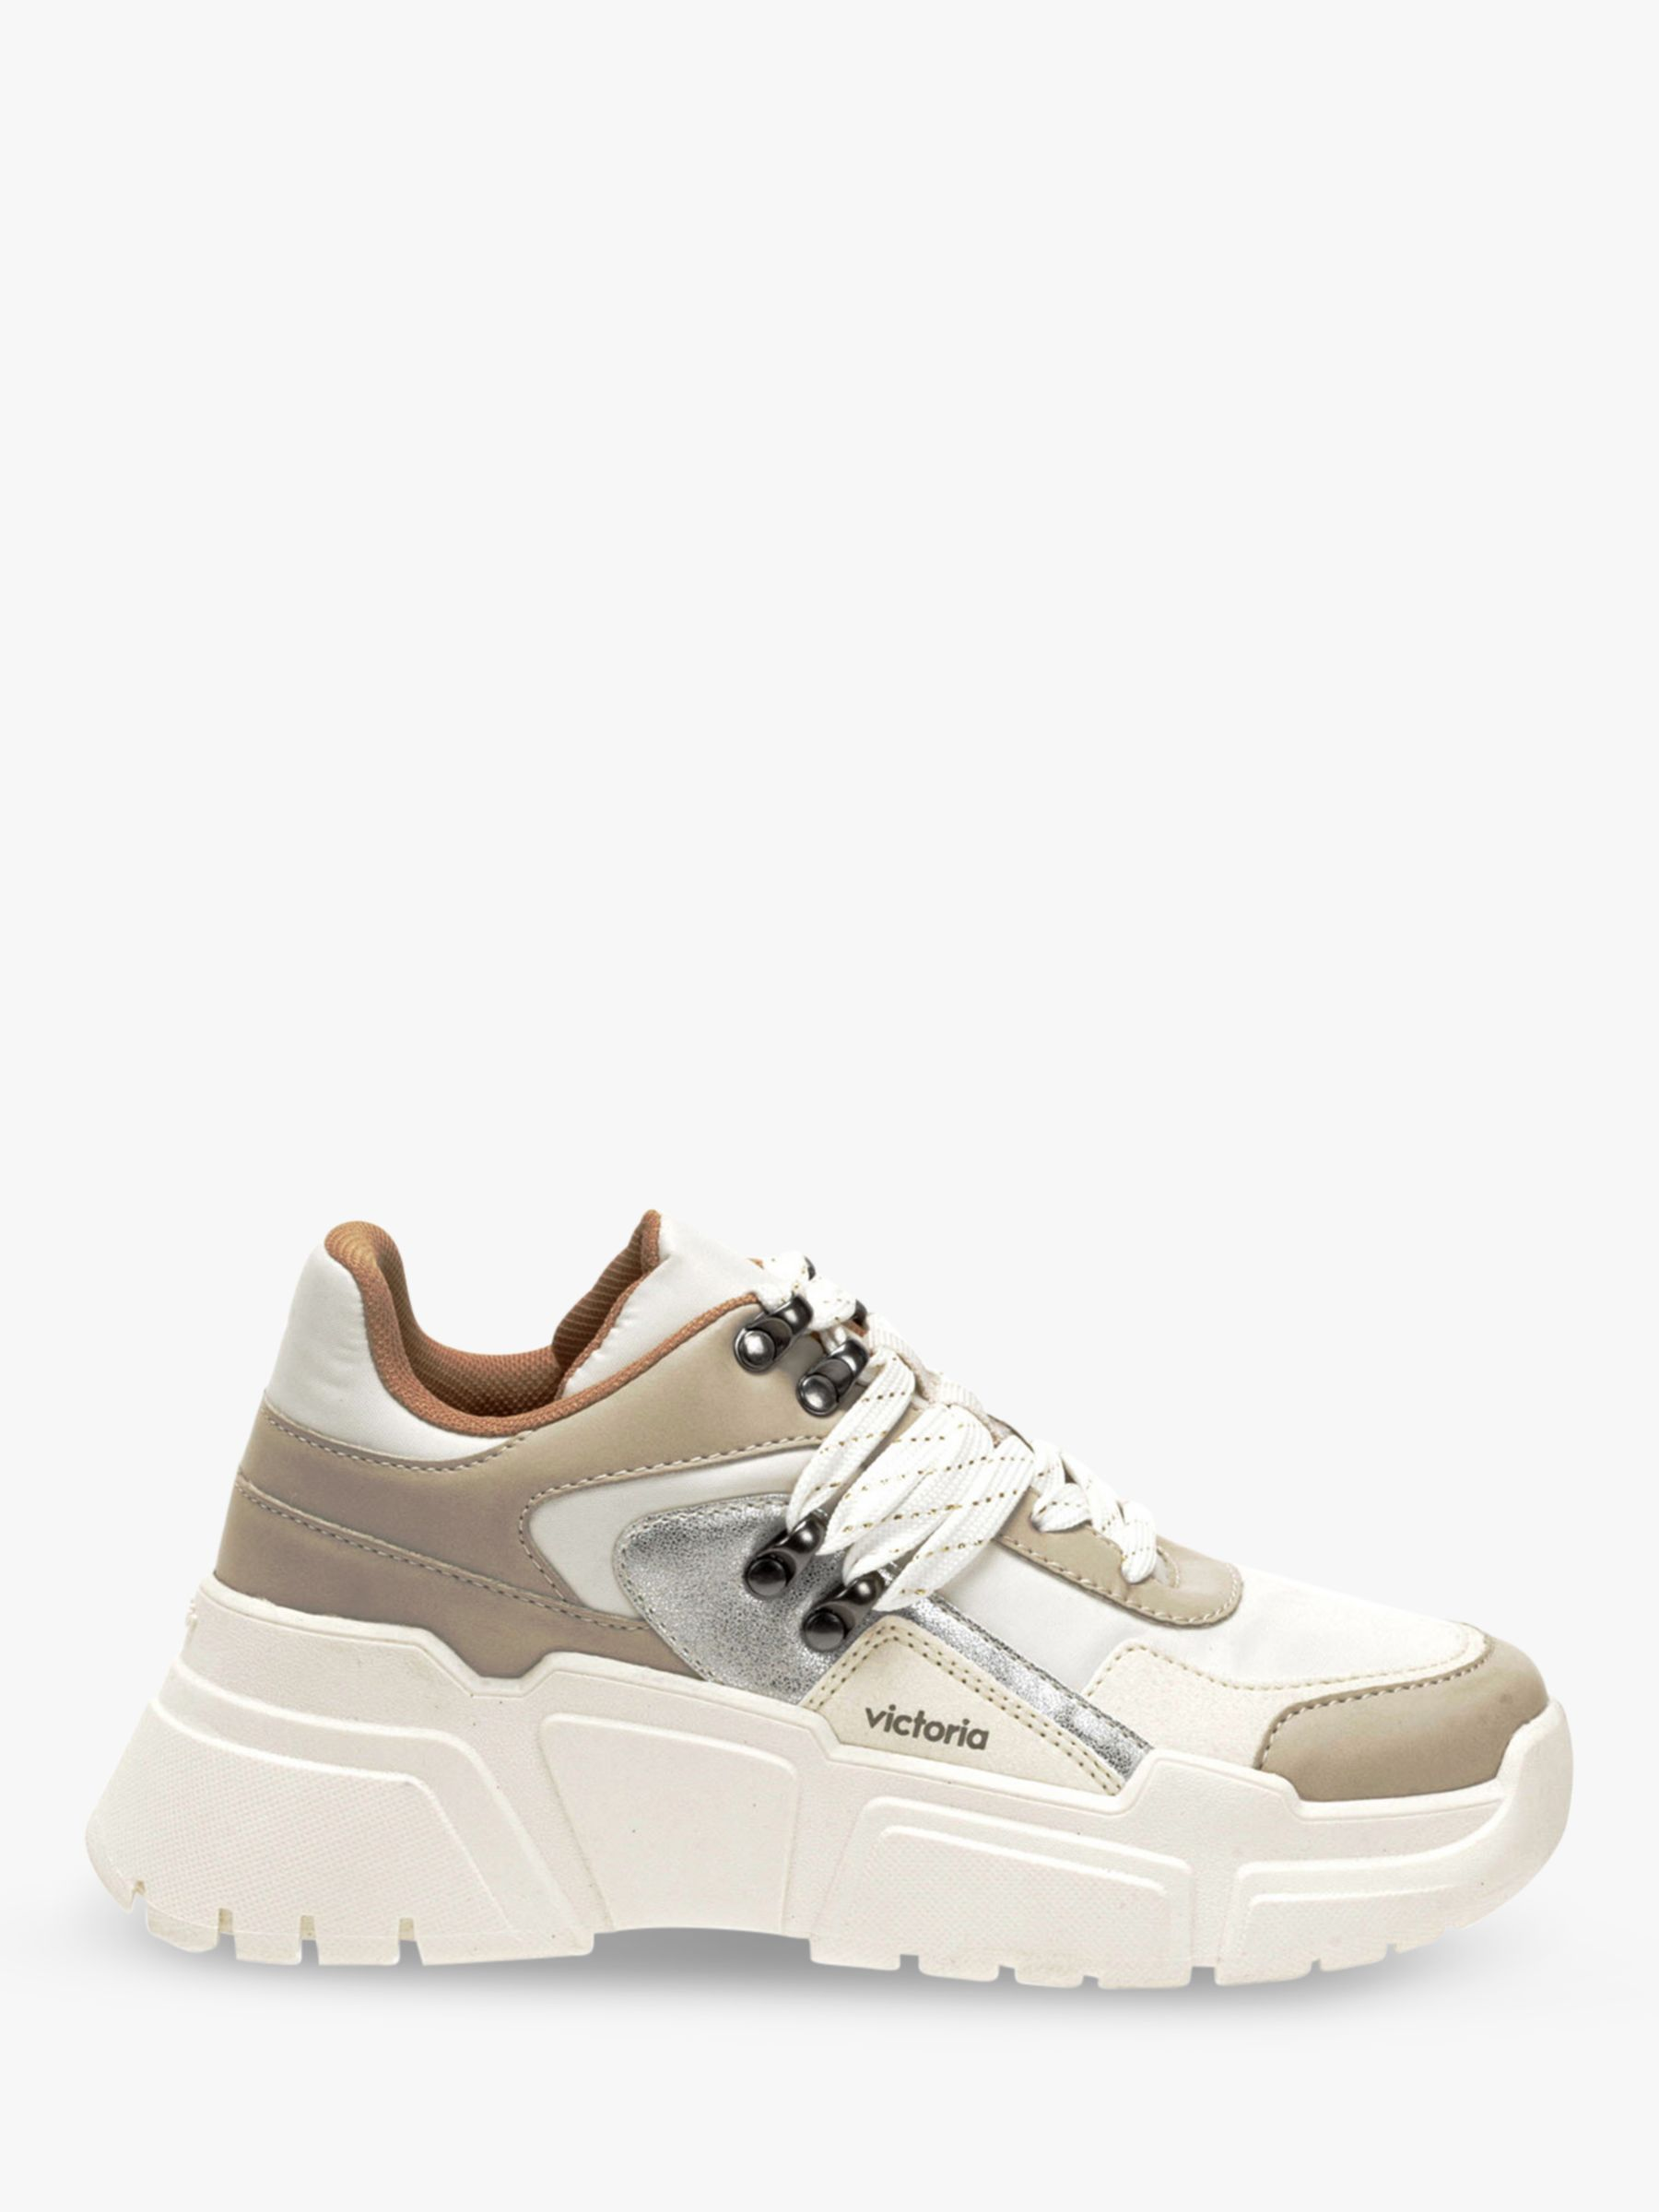 Victoria Shoes Victoria Shoes Totem Chunky Trainers, White